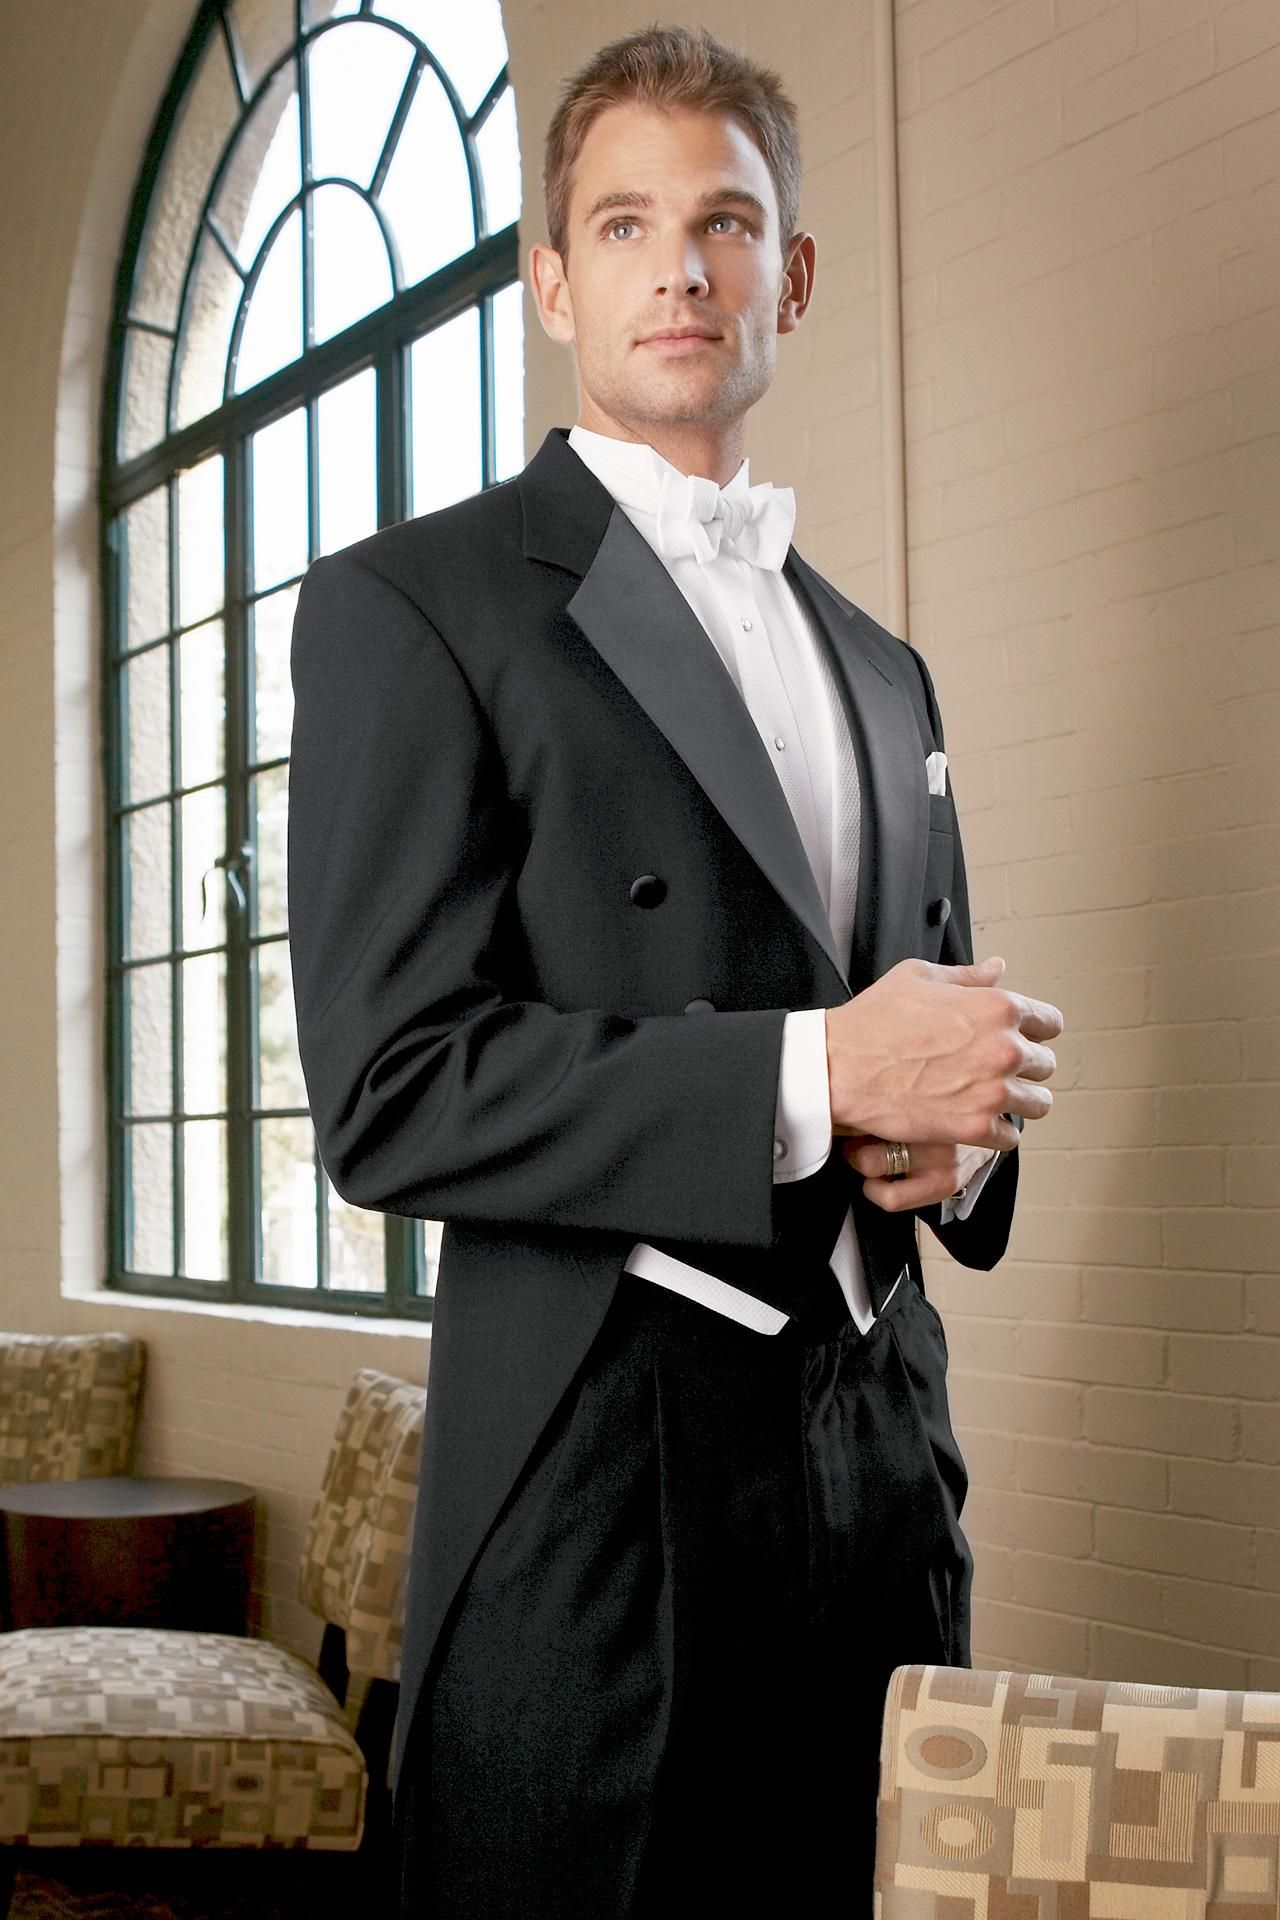 Ideal for an elegant, white tie wedding or event, the